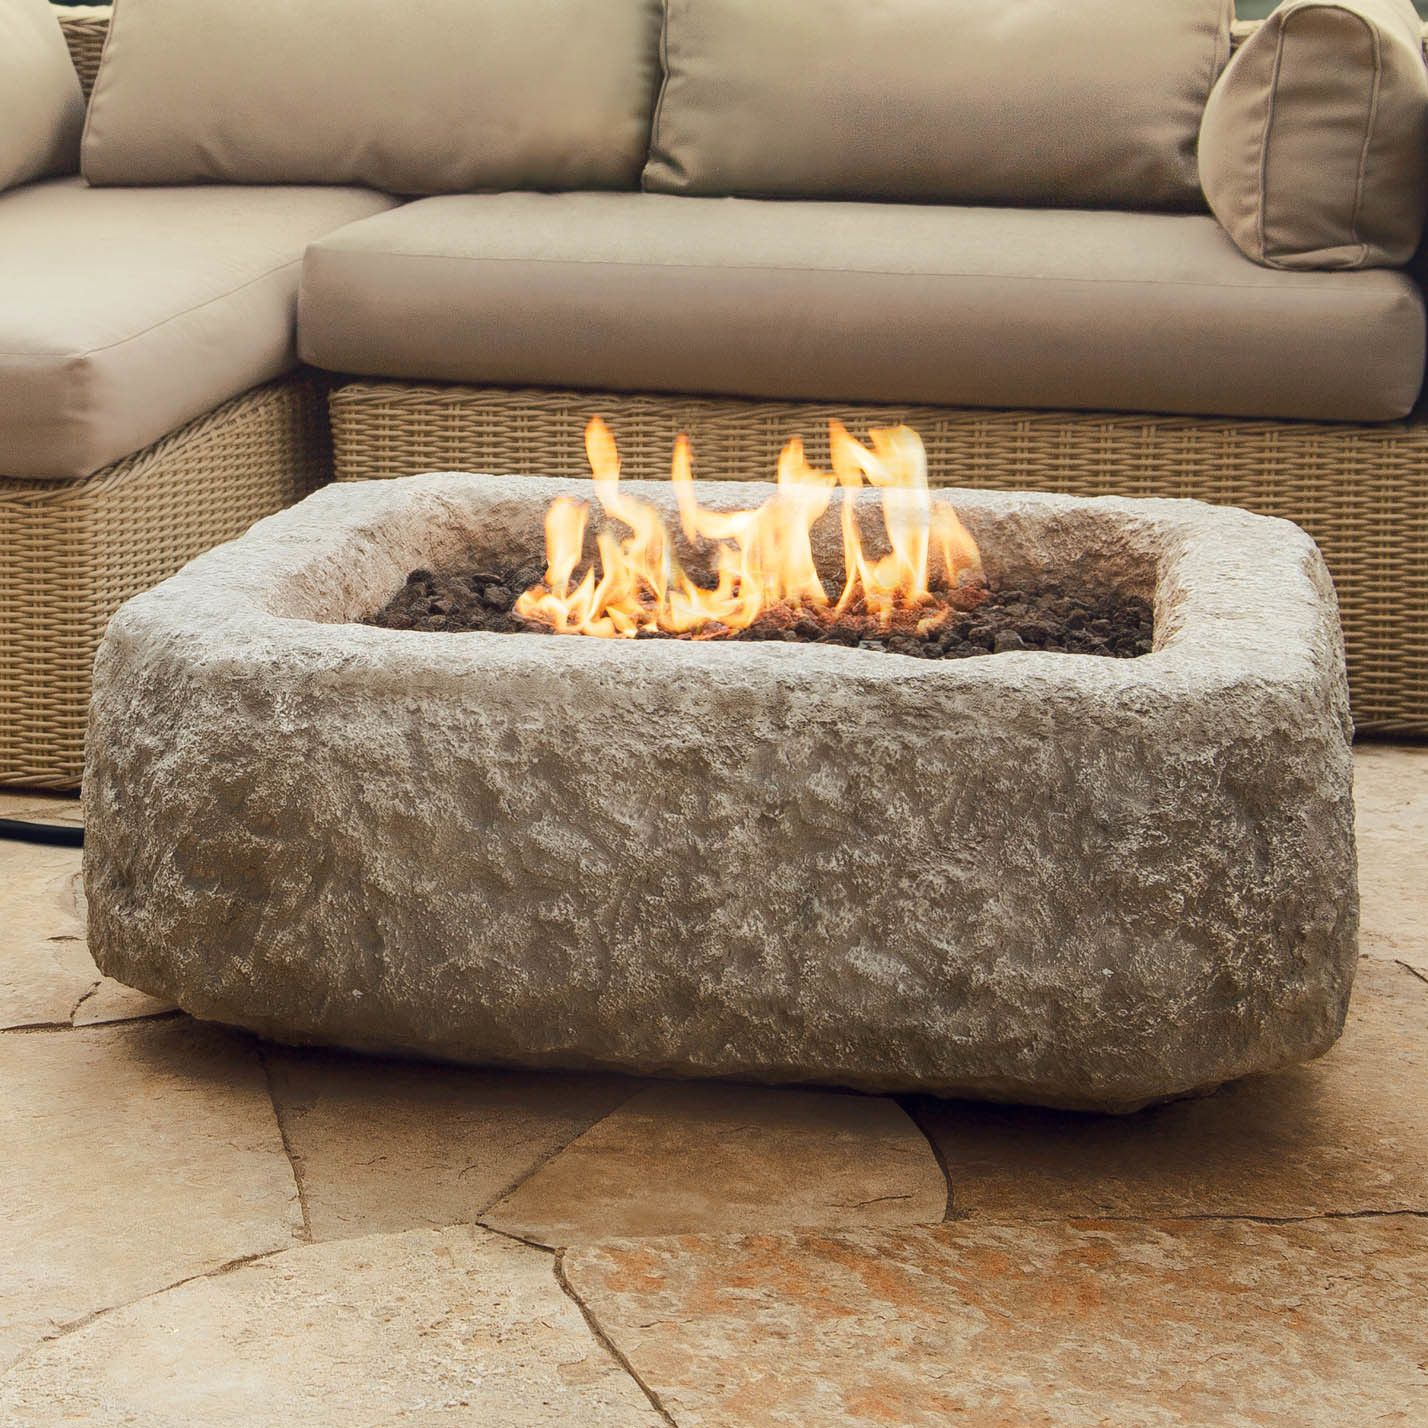 bae66f376e9d3b8b3f4233b37515e98b Top Result 50 Awesome Fire Pit Store Photography 2018 Hzt6